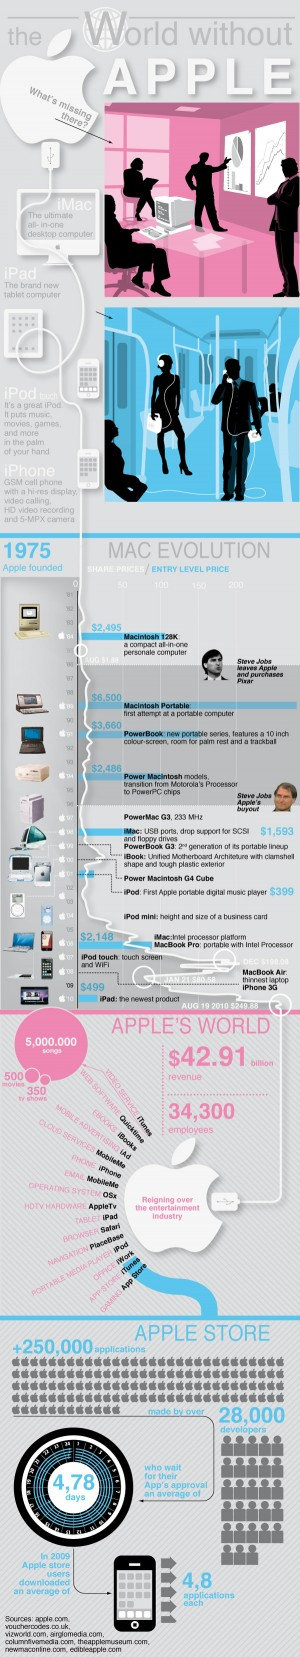 infographic world without apple 5 Great Infographics Tell the Story of Top Social Media and Online Brands